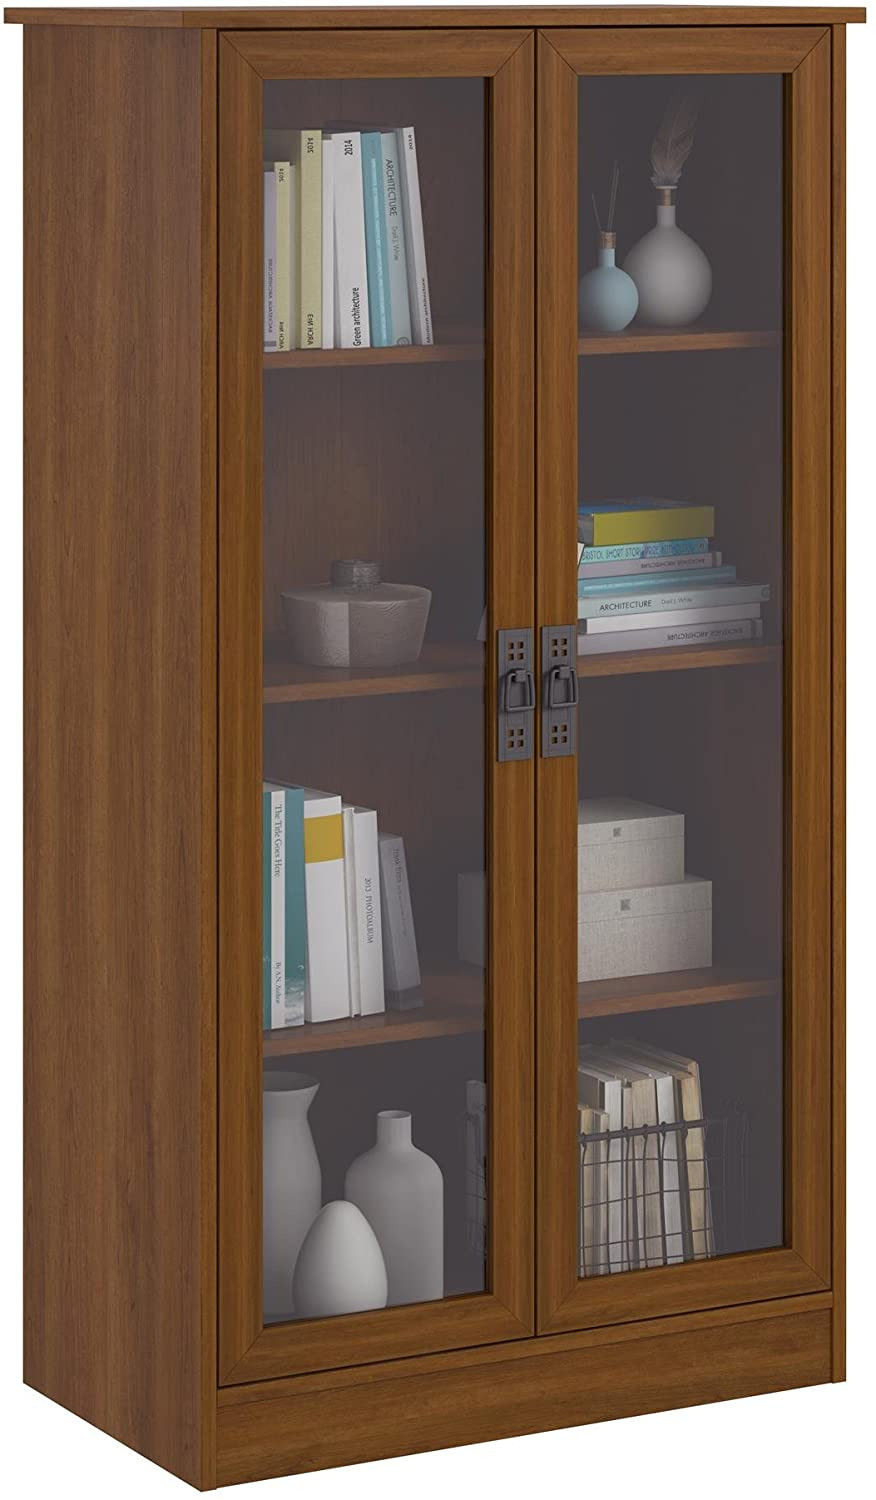 Book Cabinet with Doors Beautiful Ameriwood Home Quinton Point Bookcase with Glass Doors Inspire Cherry